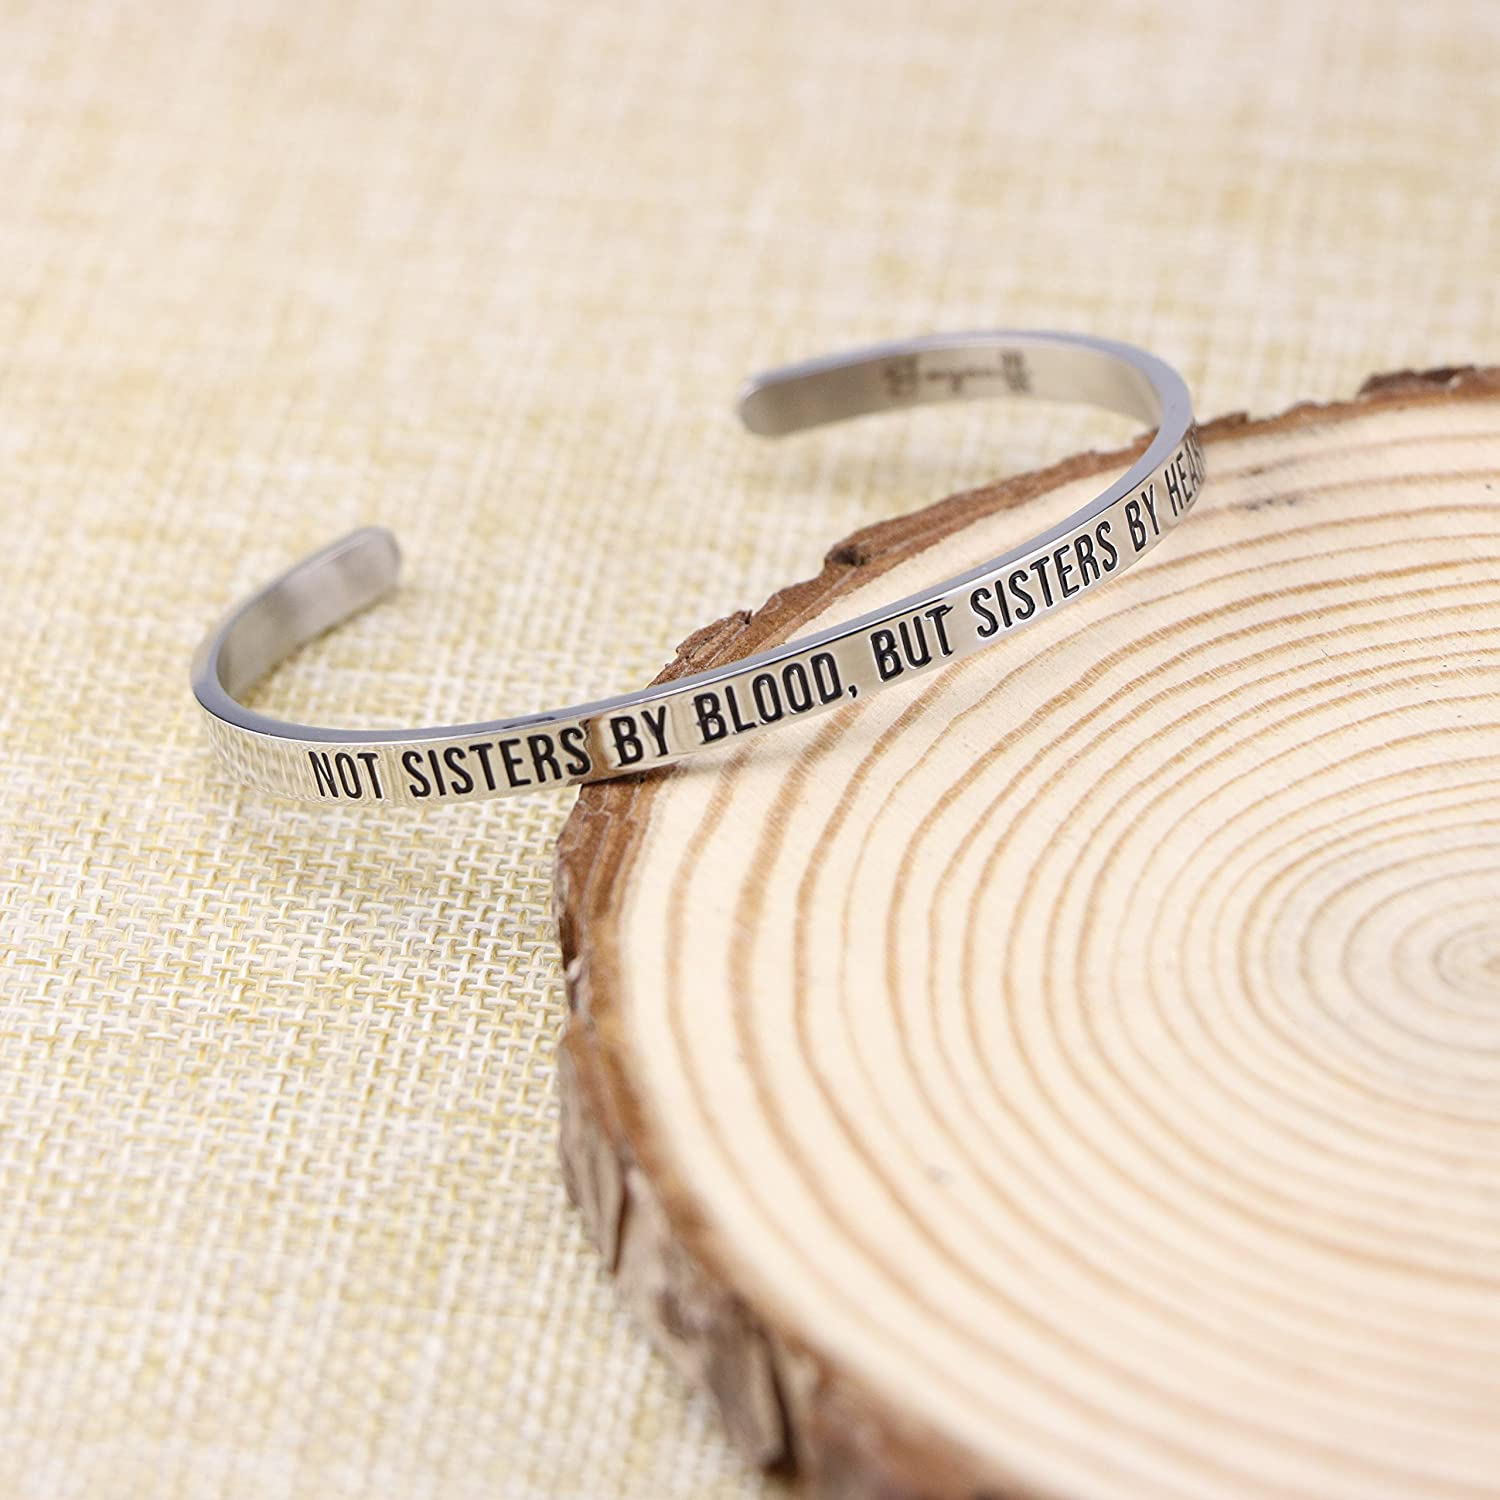 Joycuff Best Friend Bracelet Cuff Mantra Bangle Not Sisters by Blood but Sisters by Heart